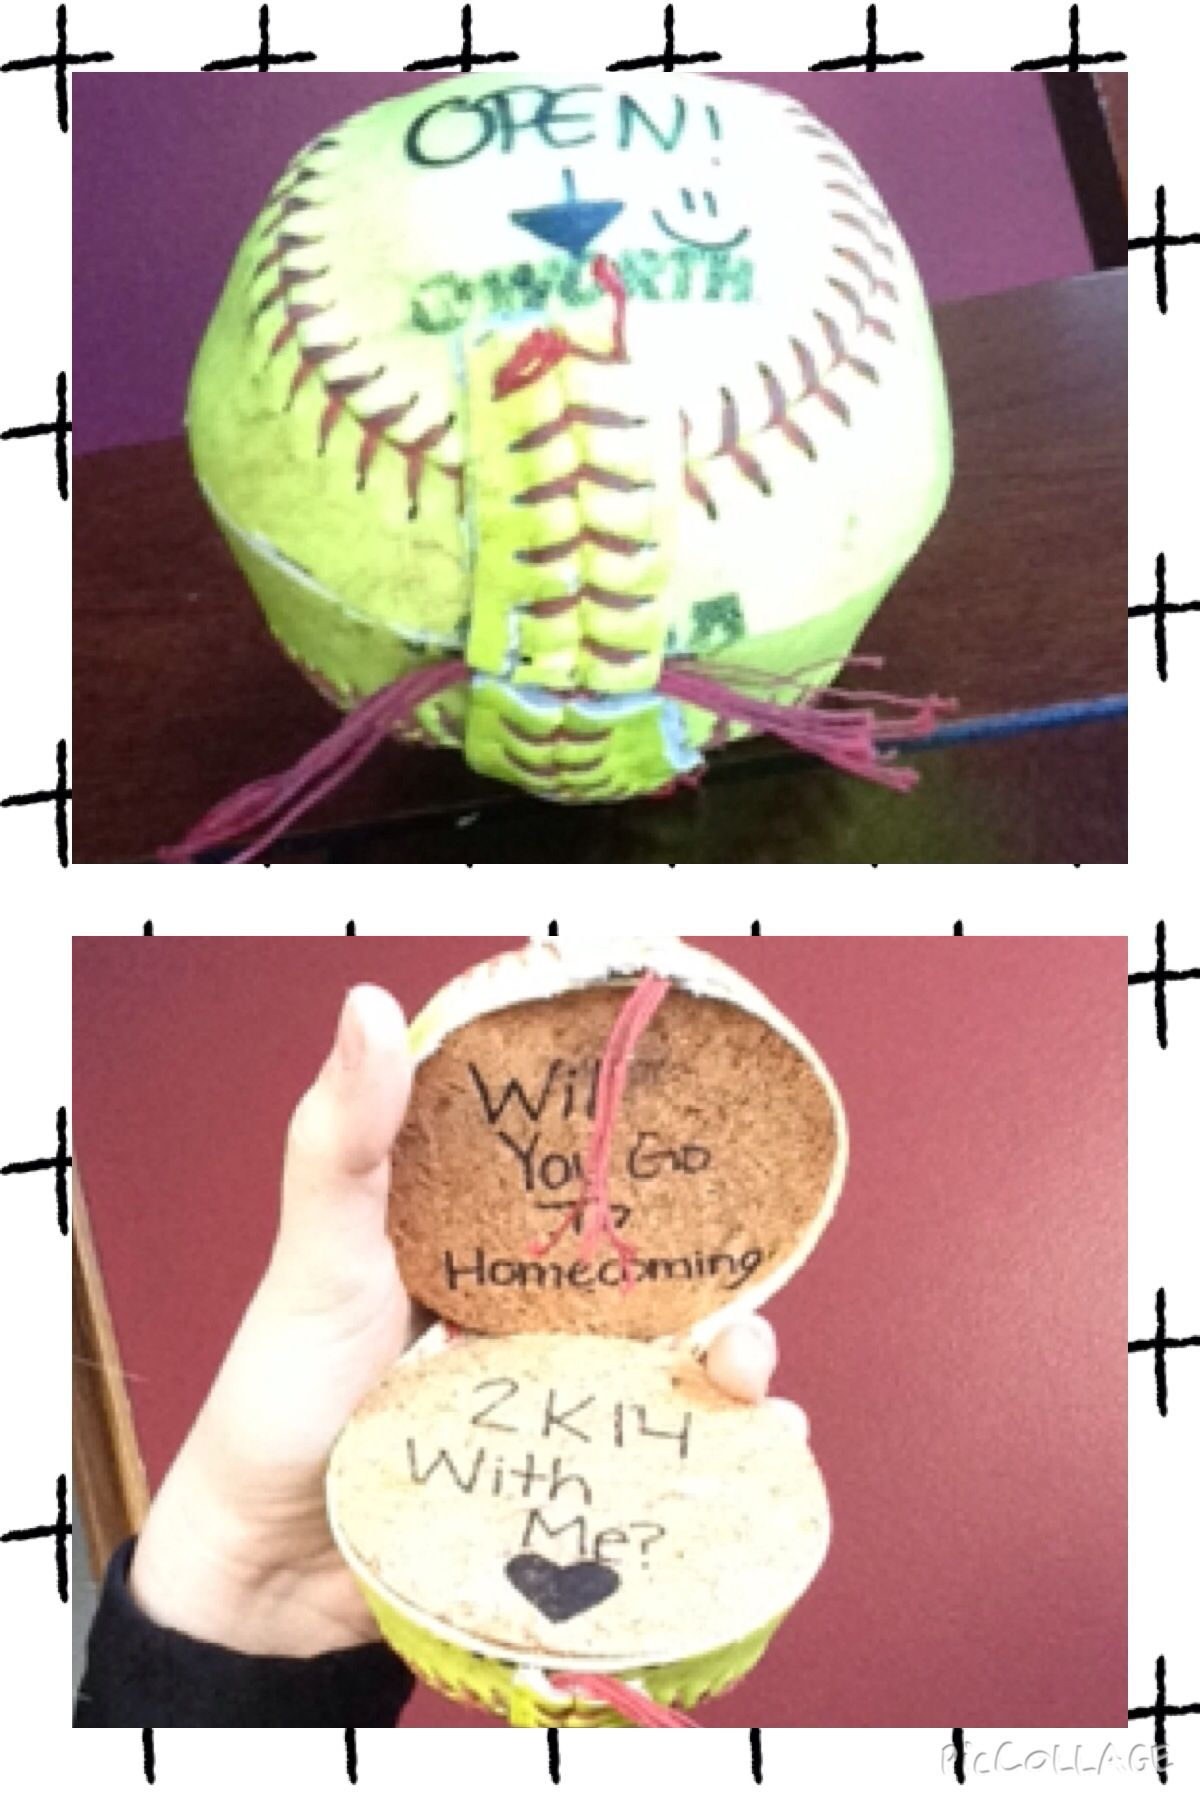 This Is How A Softball Players Asks Someone To Homecoming!